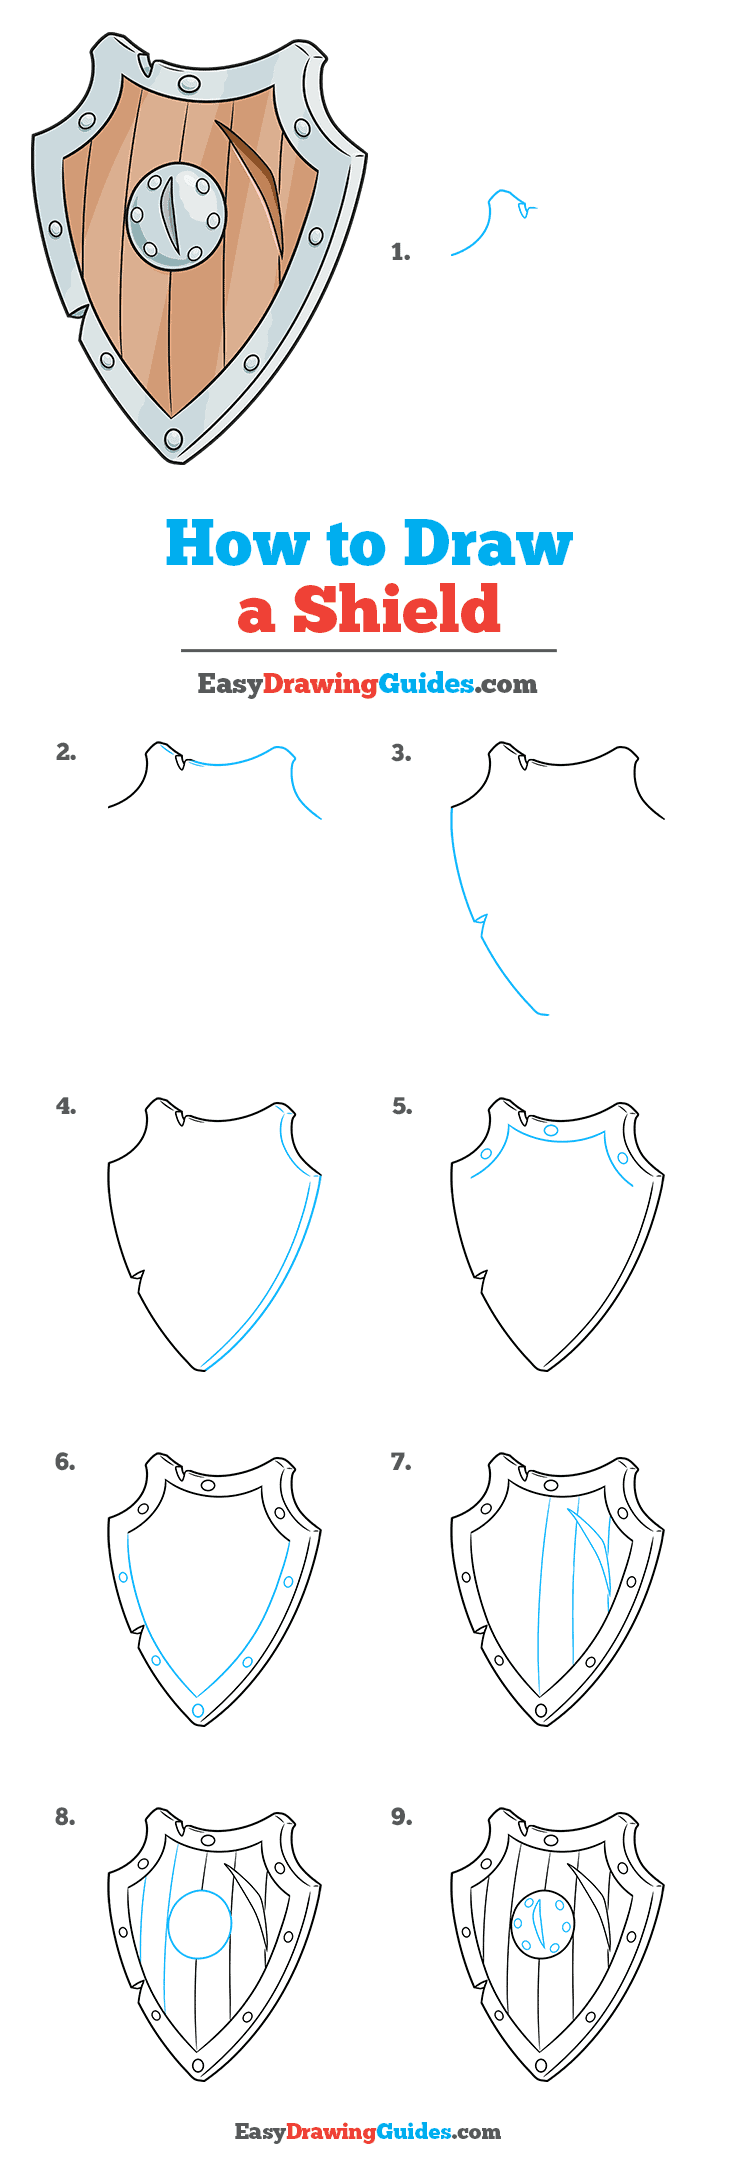 How to Draw a Shield Step by Step Tutorial Image